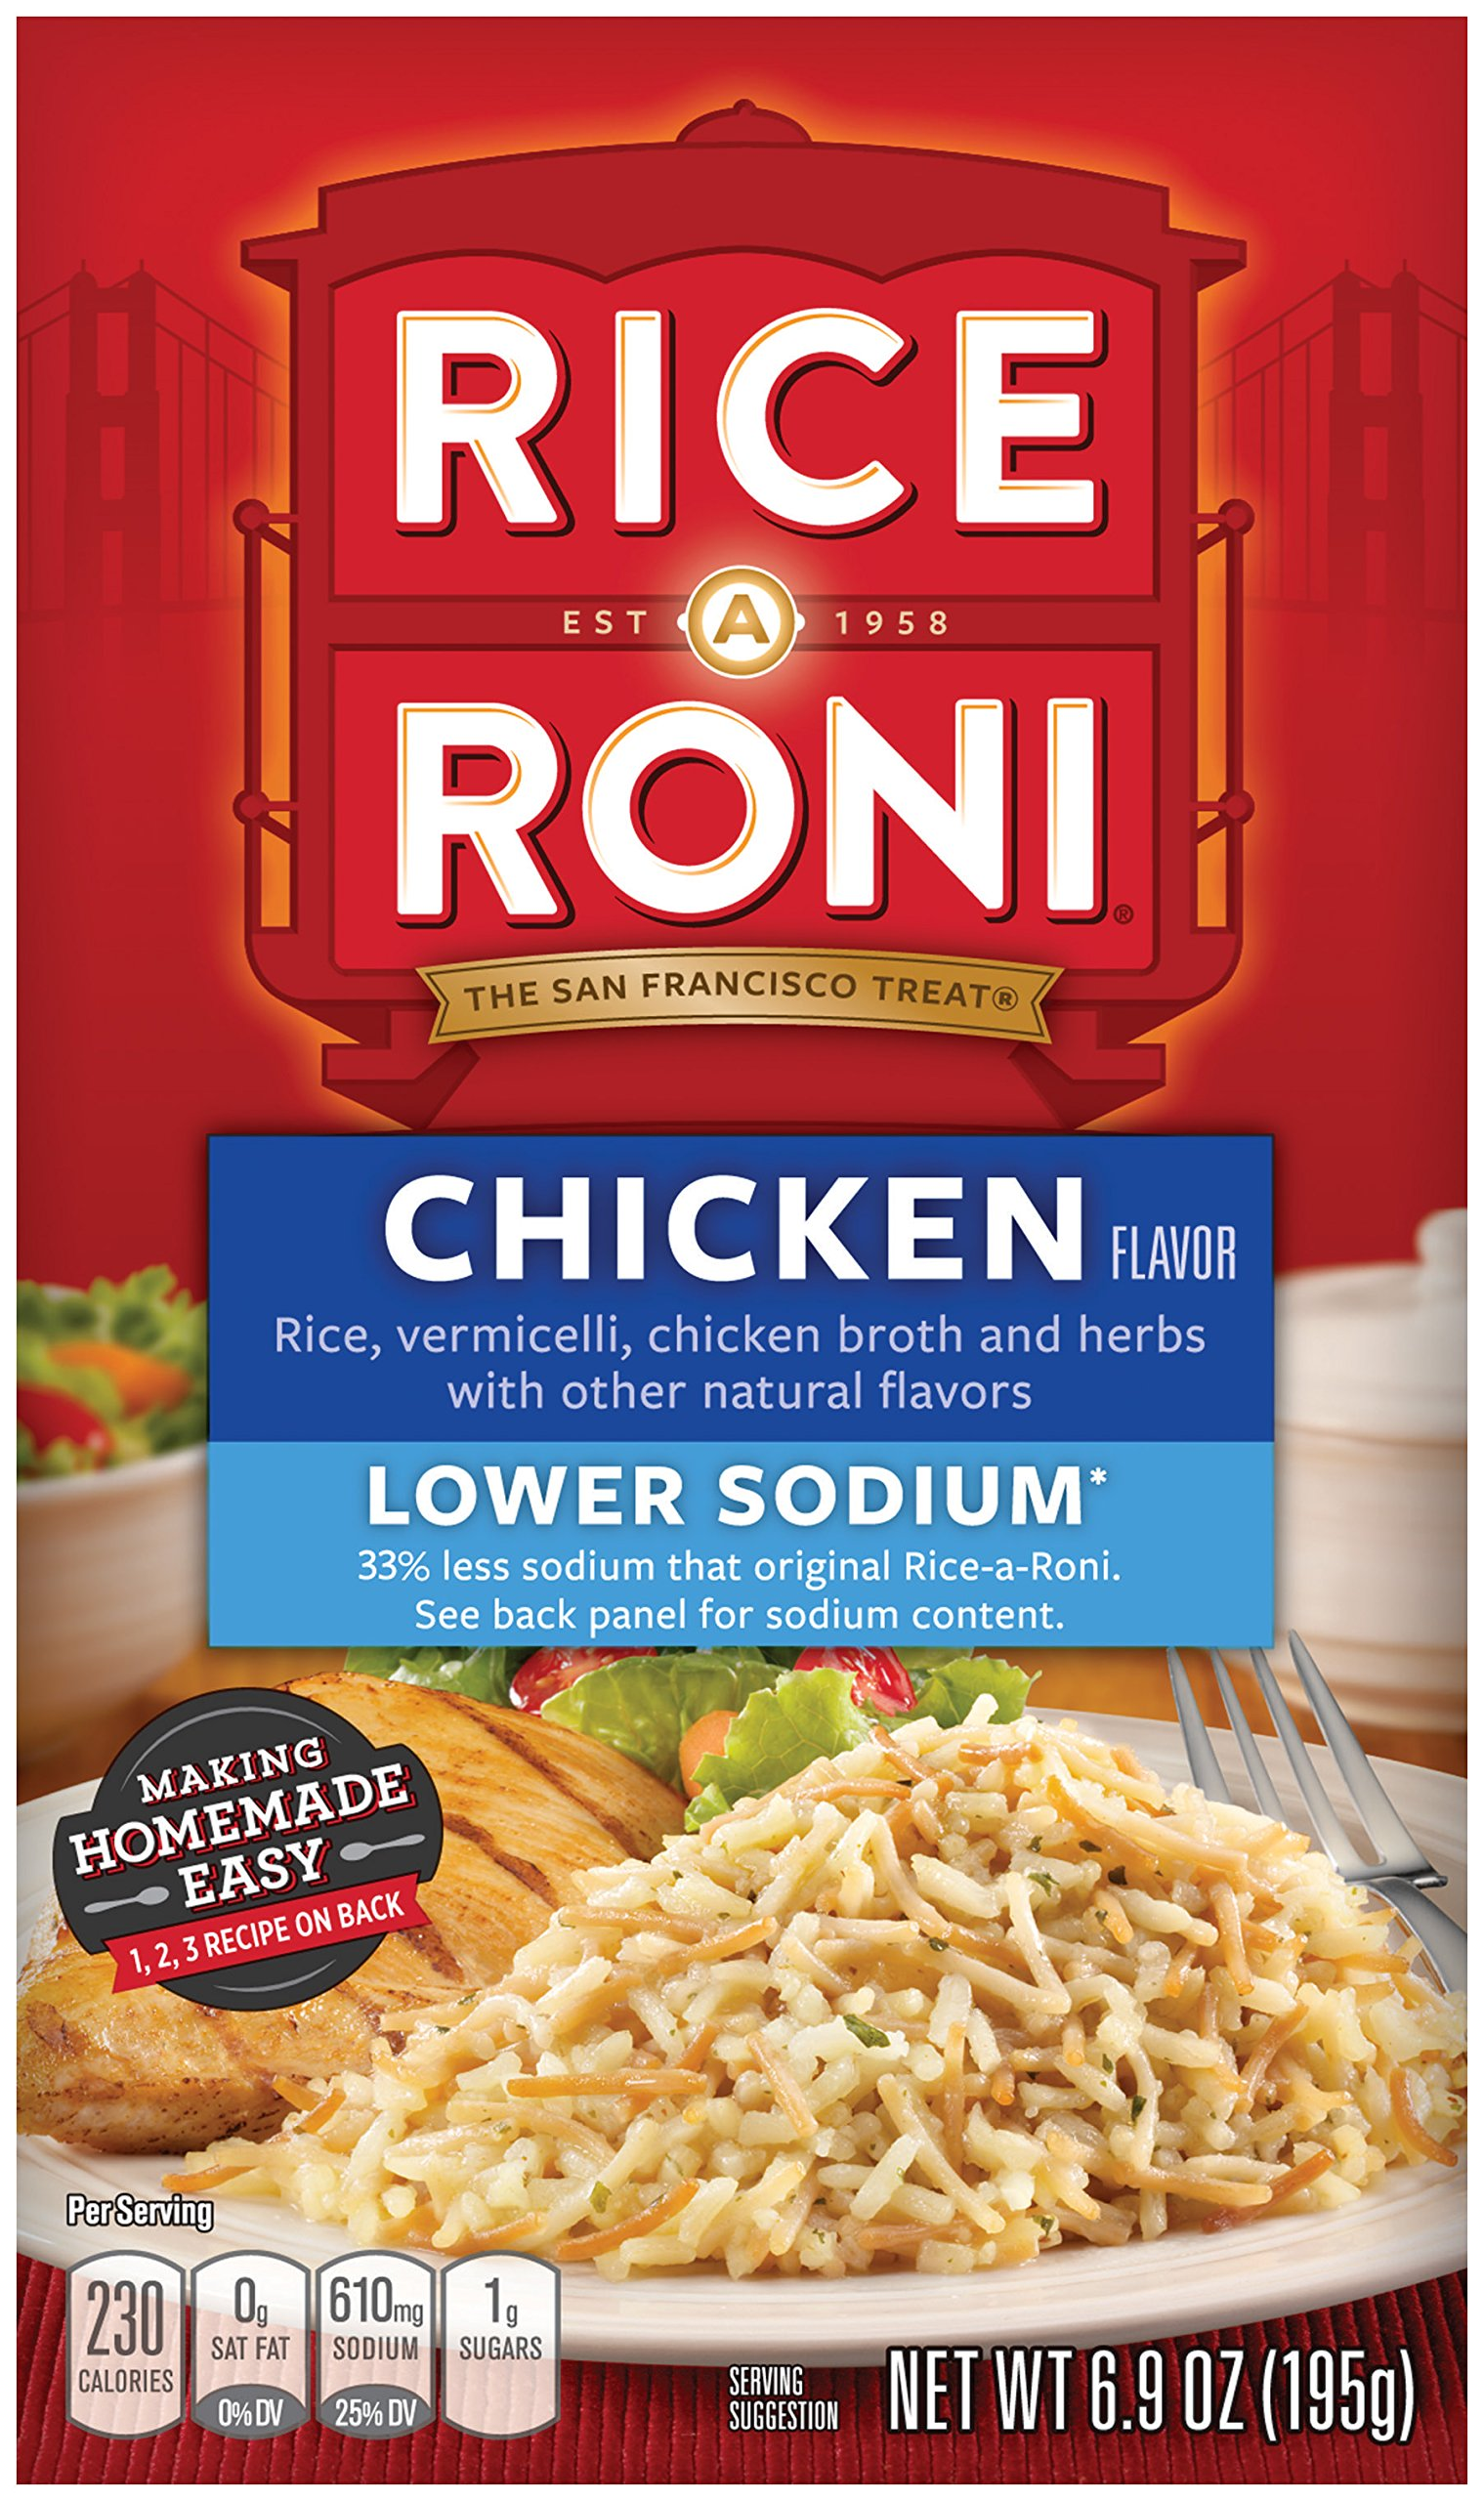 Rice-A-Roni Chicken, Lower Sodium, 6.9 Ounce